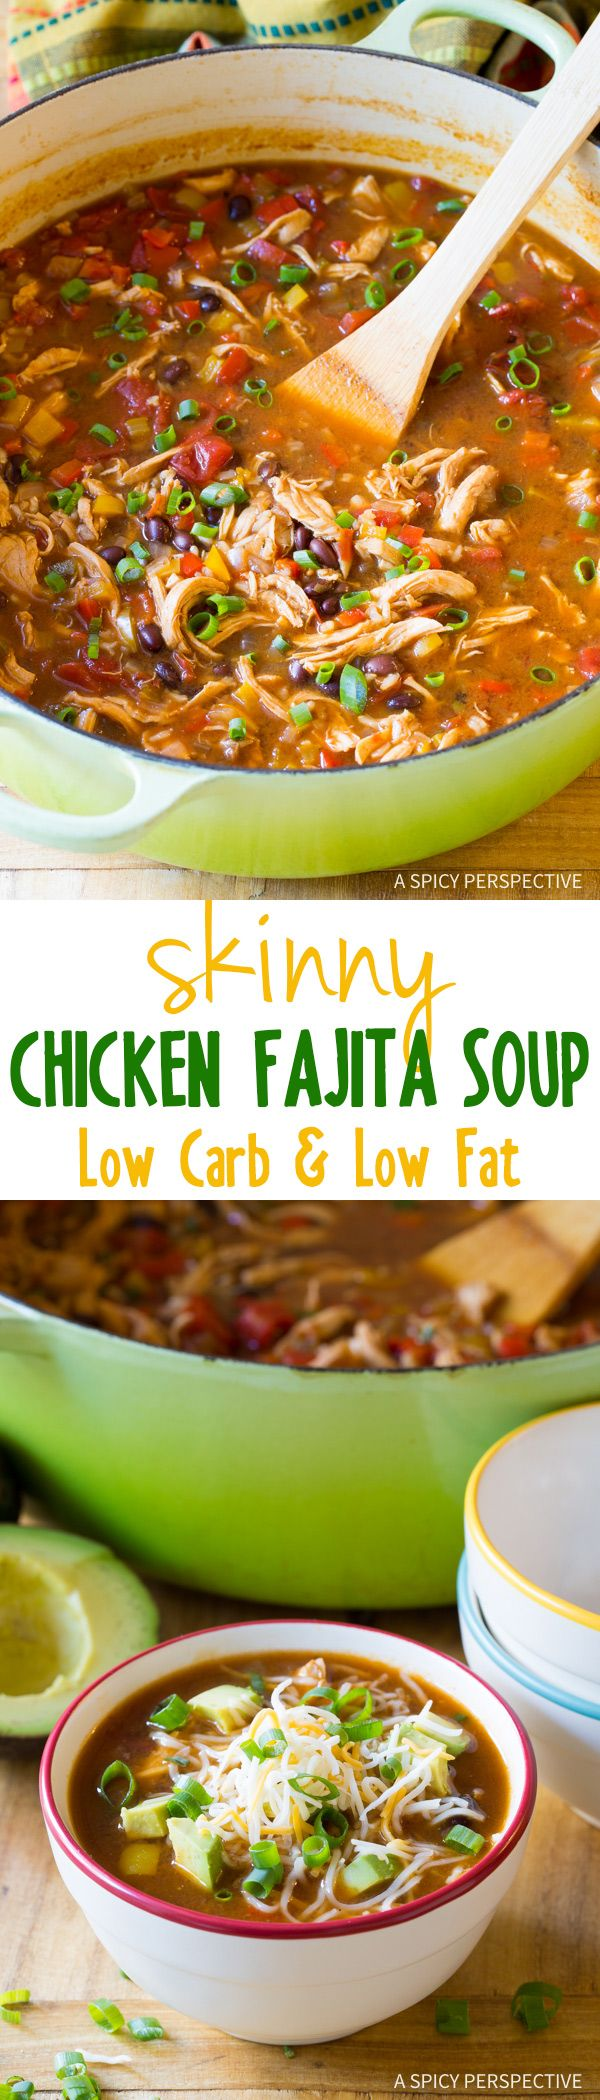 Amazing Skinny Chicken Fajita Soup Recipe - Low Fat, Gluten Free,(Healthy Recipes Low Carb)